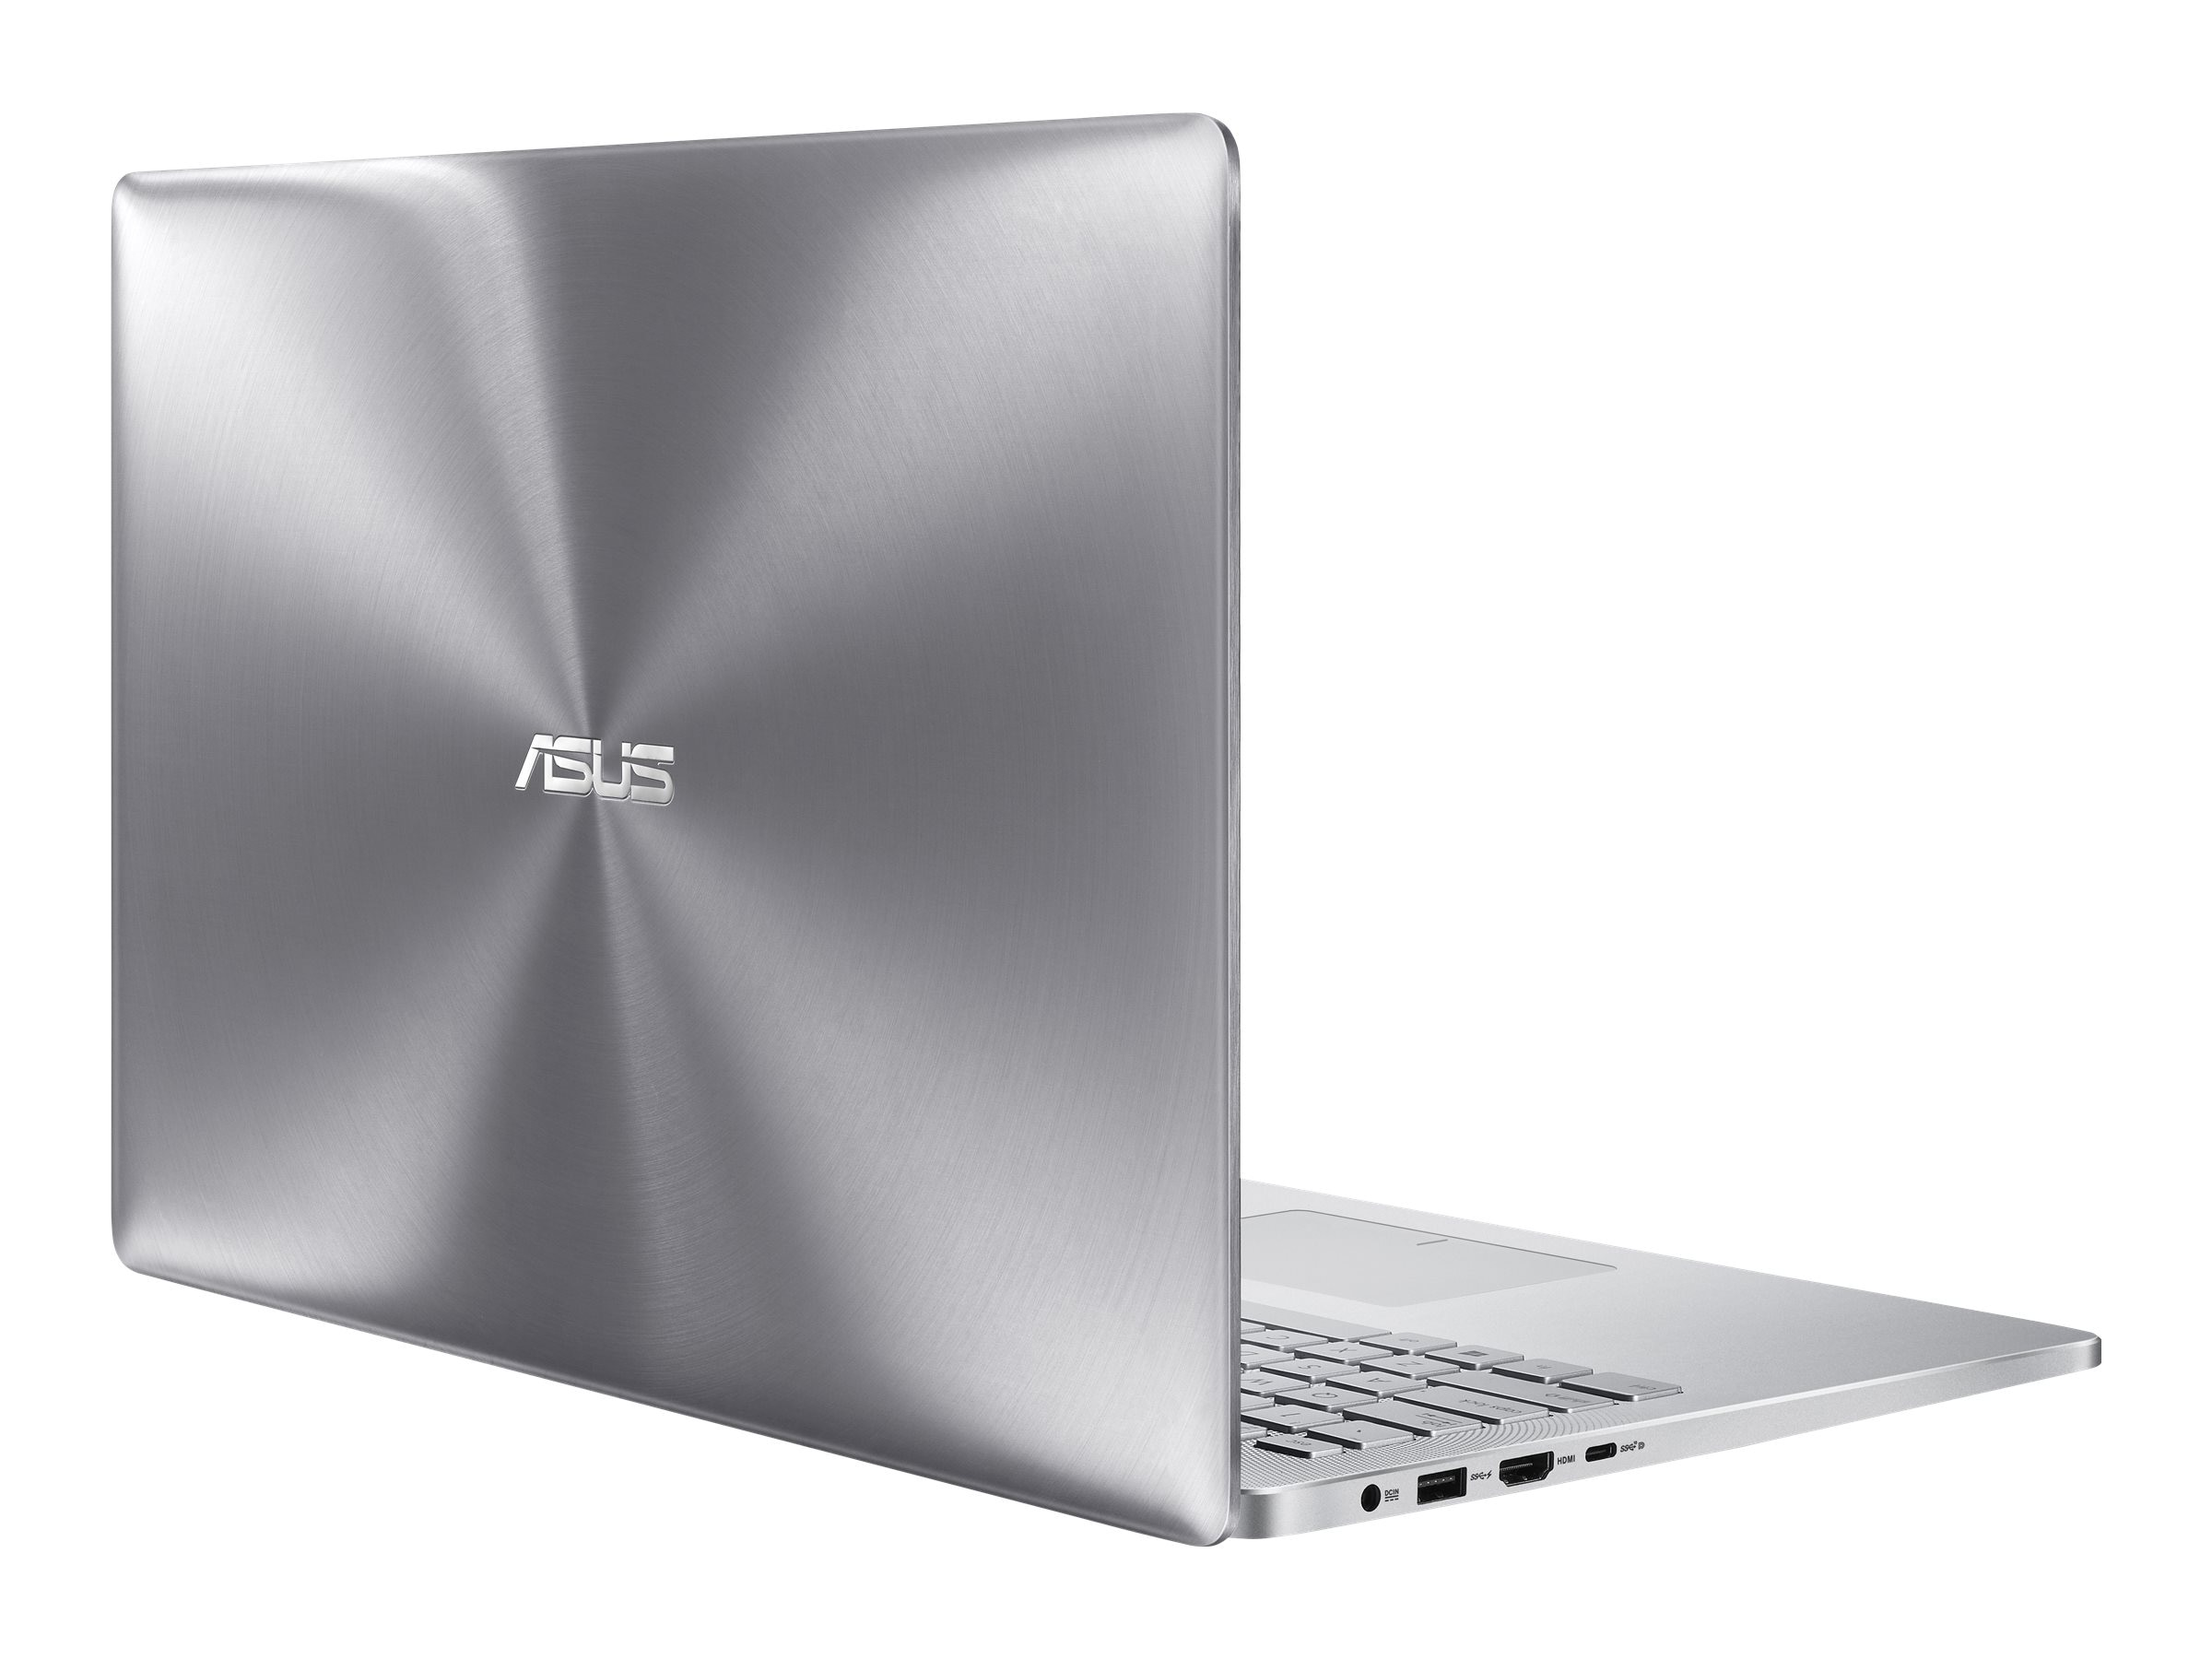 Asus Zenbook Pro Core i7 2.6GHz 16GB 512GB SSD 960M 15.6 4K MT W10-64, UX501VW-DS71T, 30975036, Notebooks